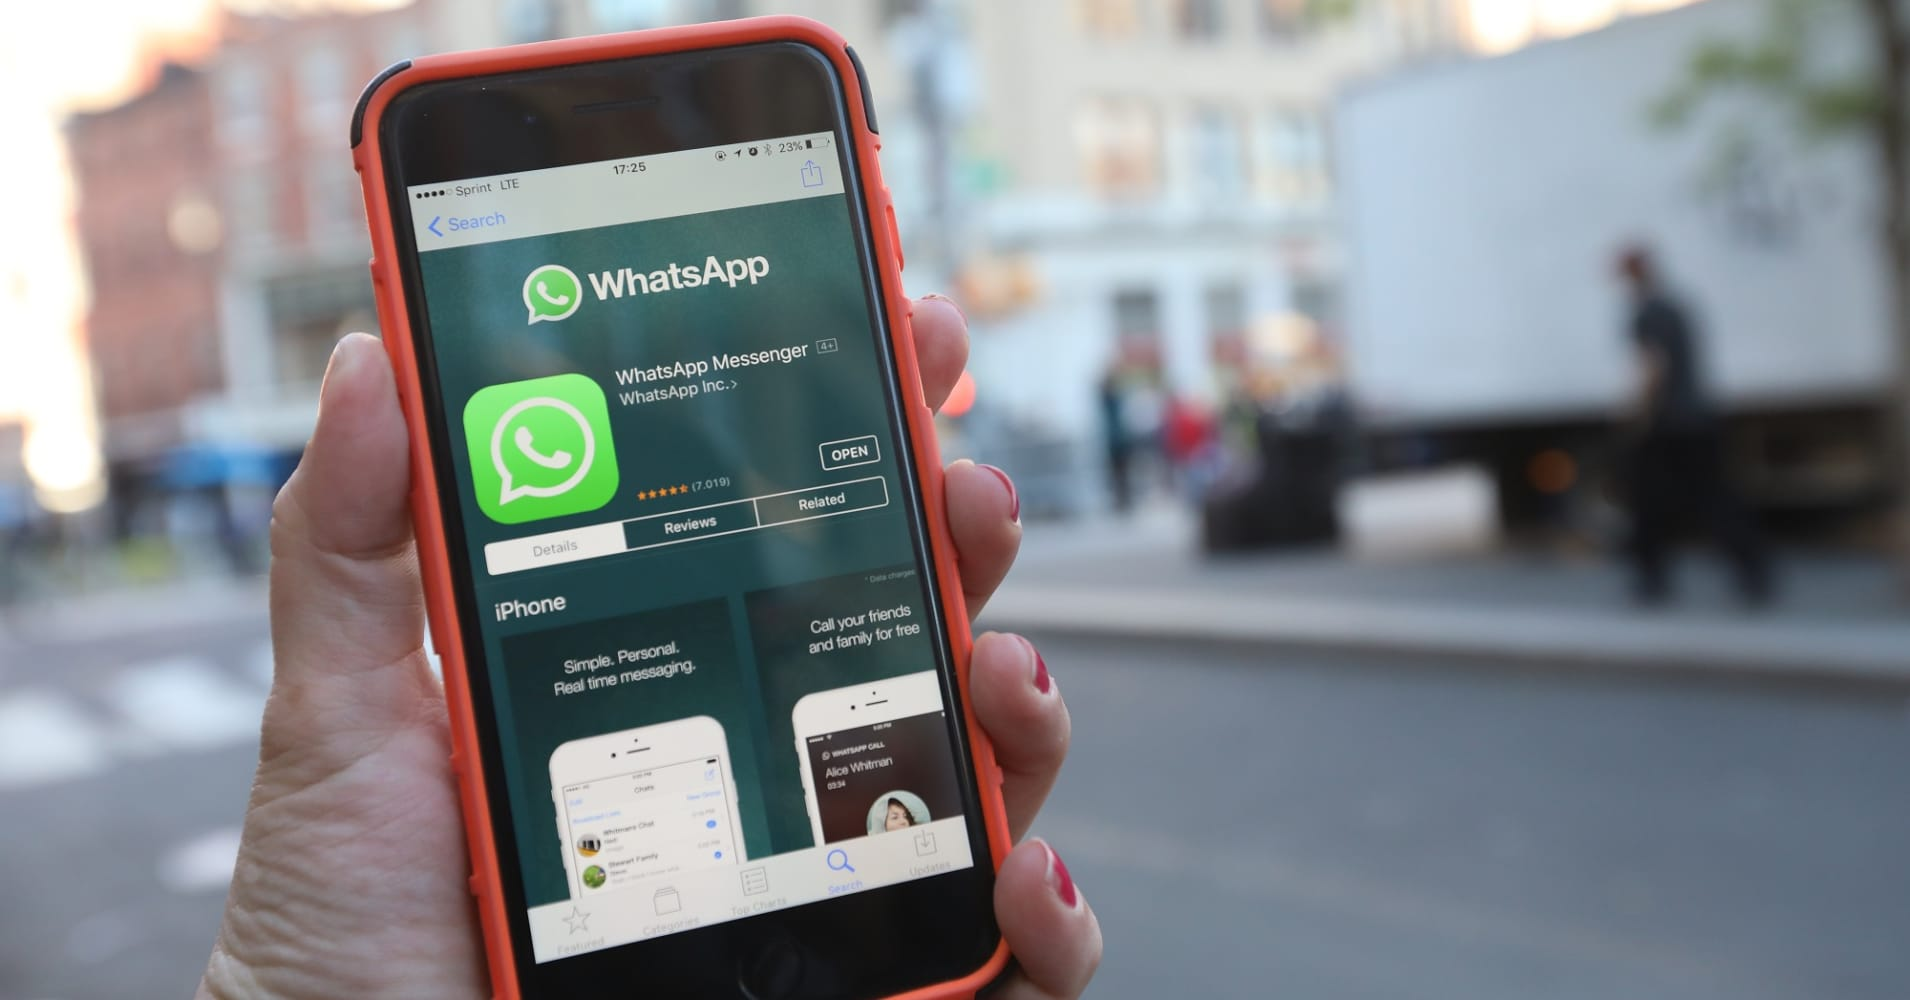 Facebook's WhatsApp is so huge in India that one app reached 9 million users without spending a dime